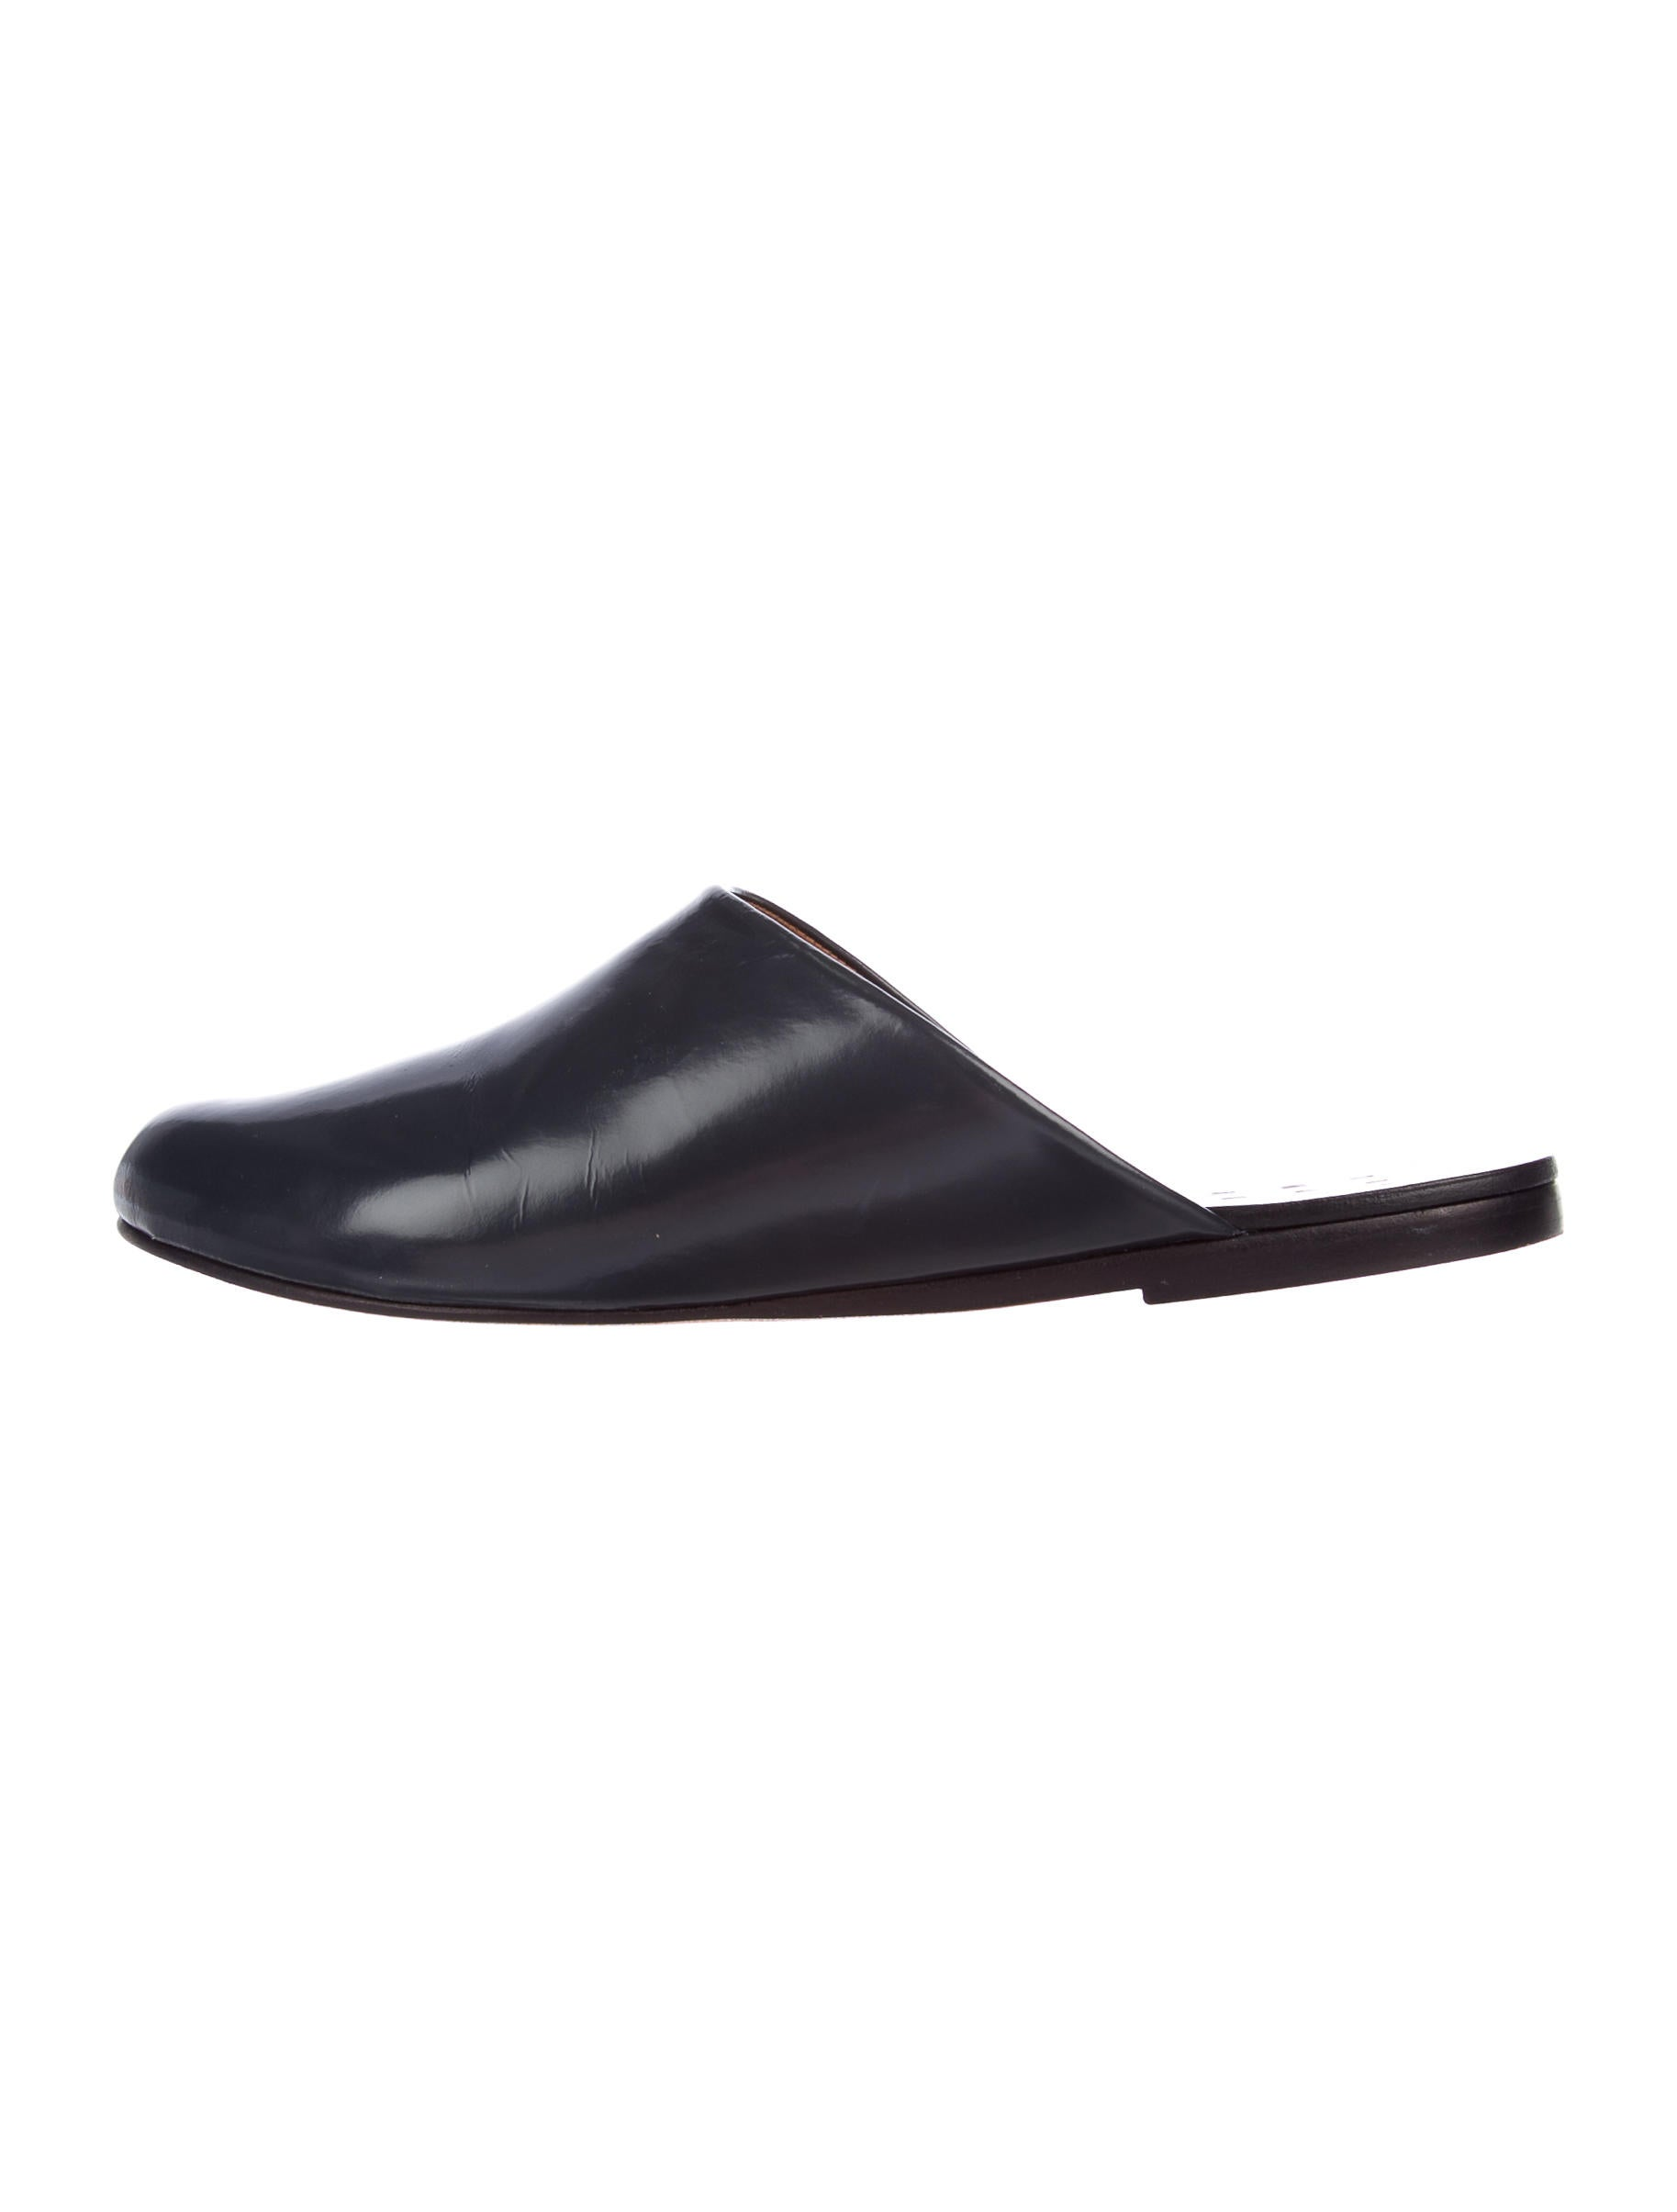 Trademark Leather Round-Toe Mules authentic for sale clearance the cheapest free shipping buy high quality cheap online outlet professional X6ntt